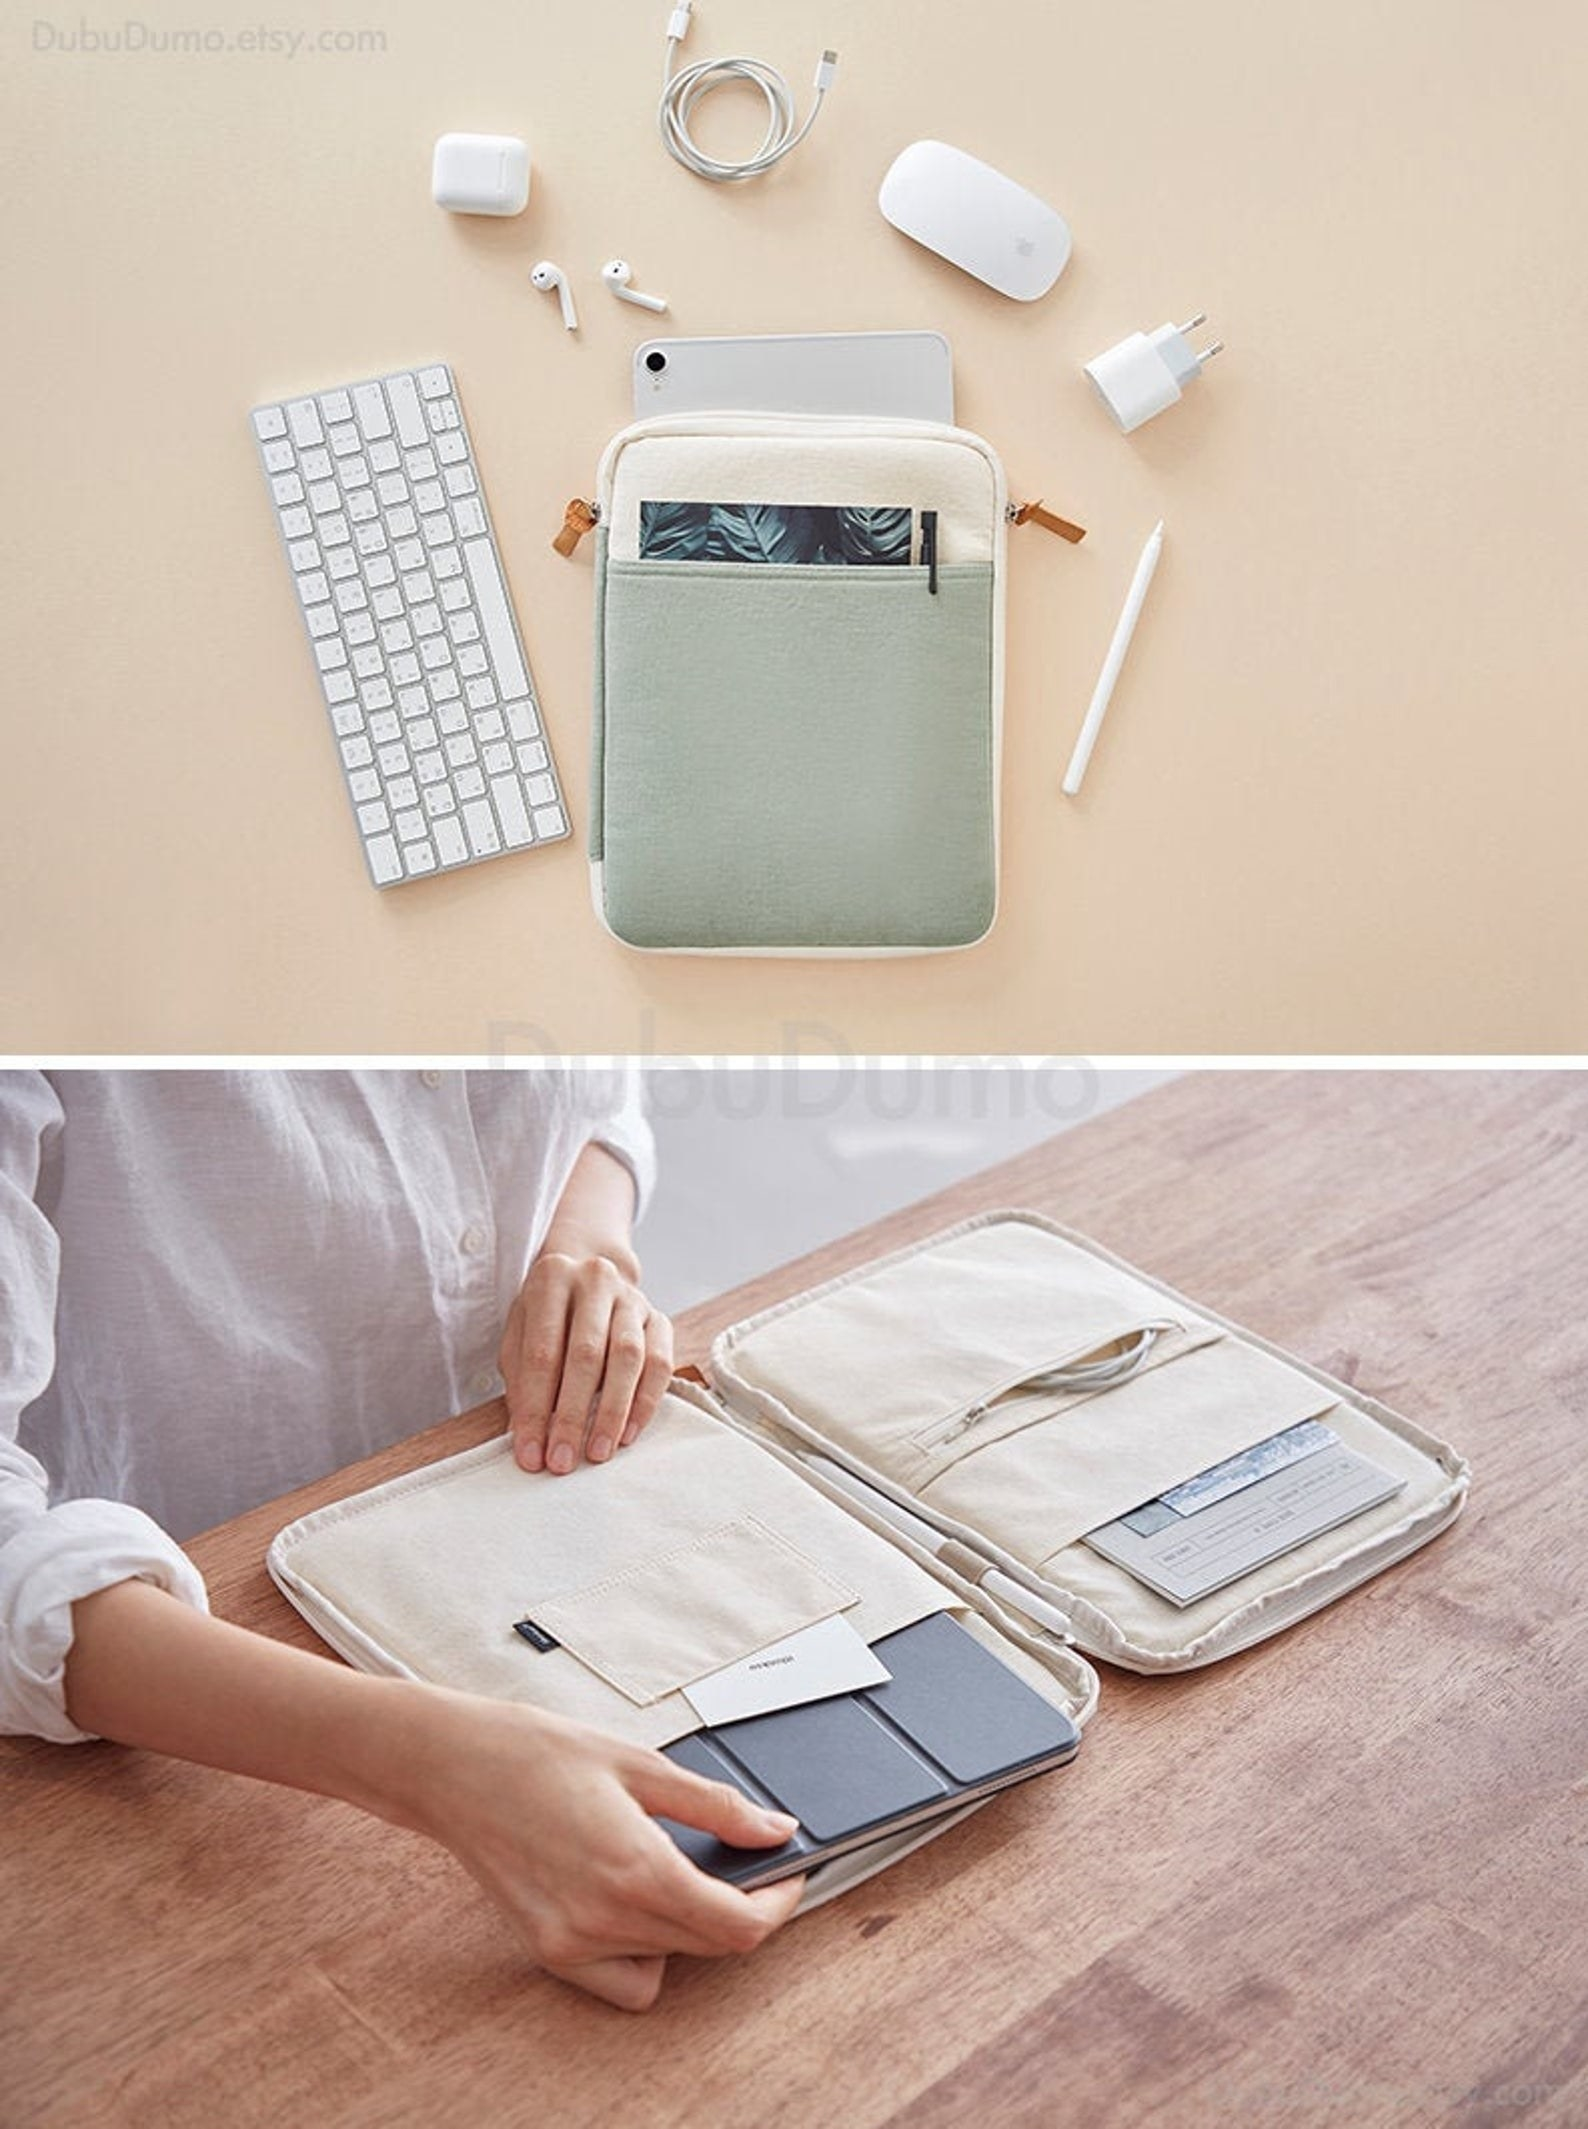 Ipad case with organization pockets for cords and notebooks